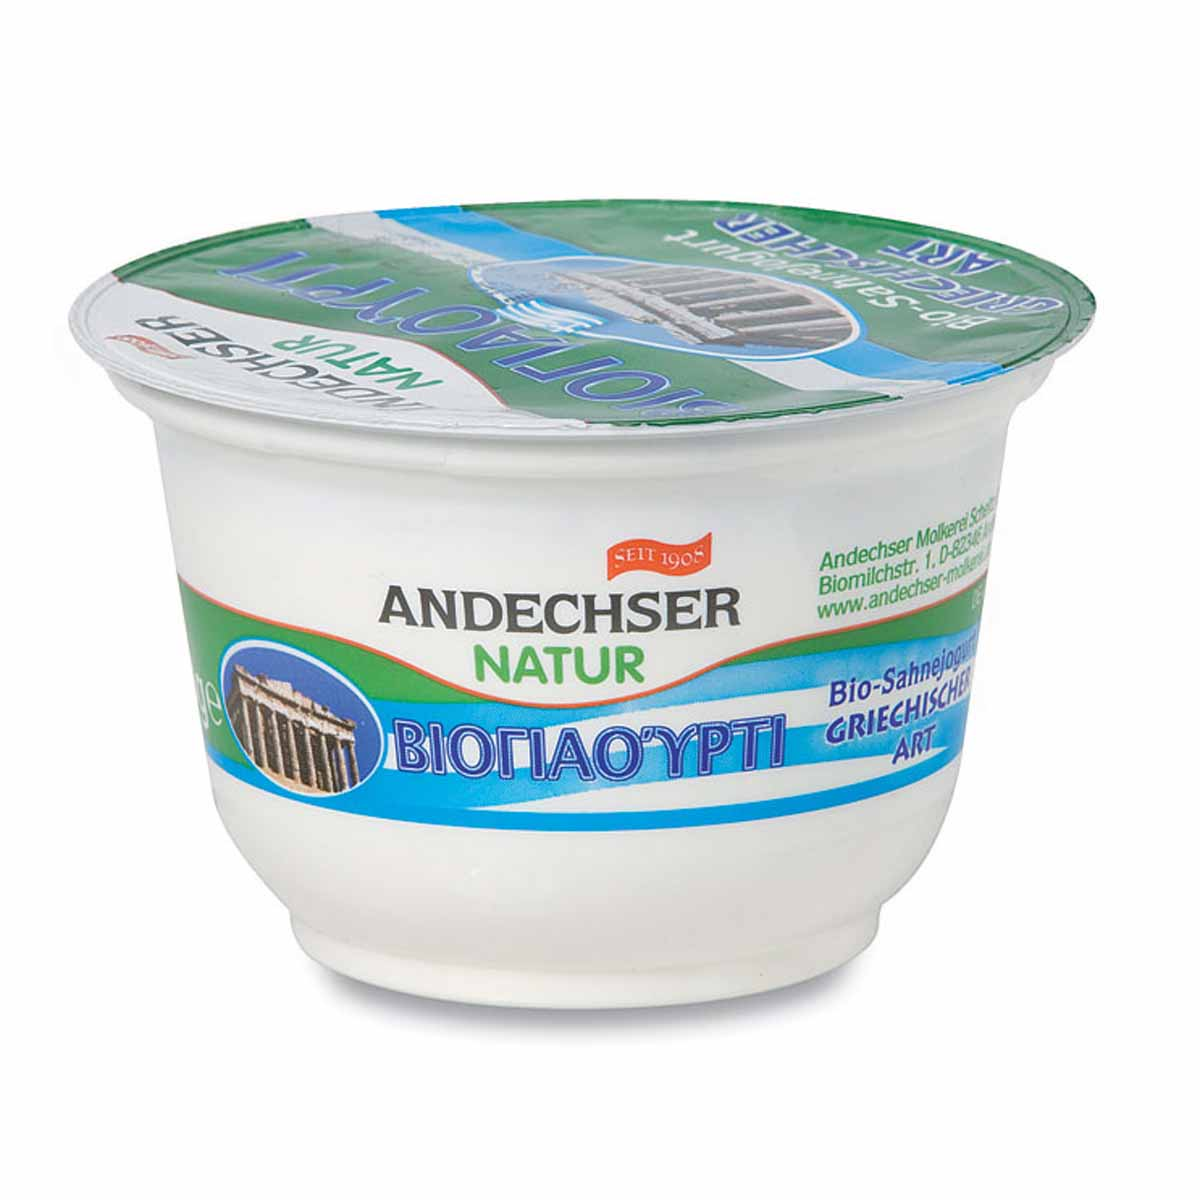 Andechser Jo tipo greco naturale